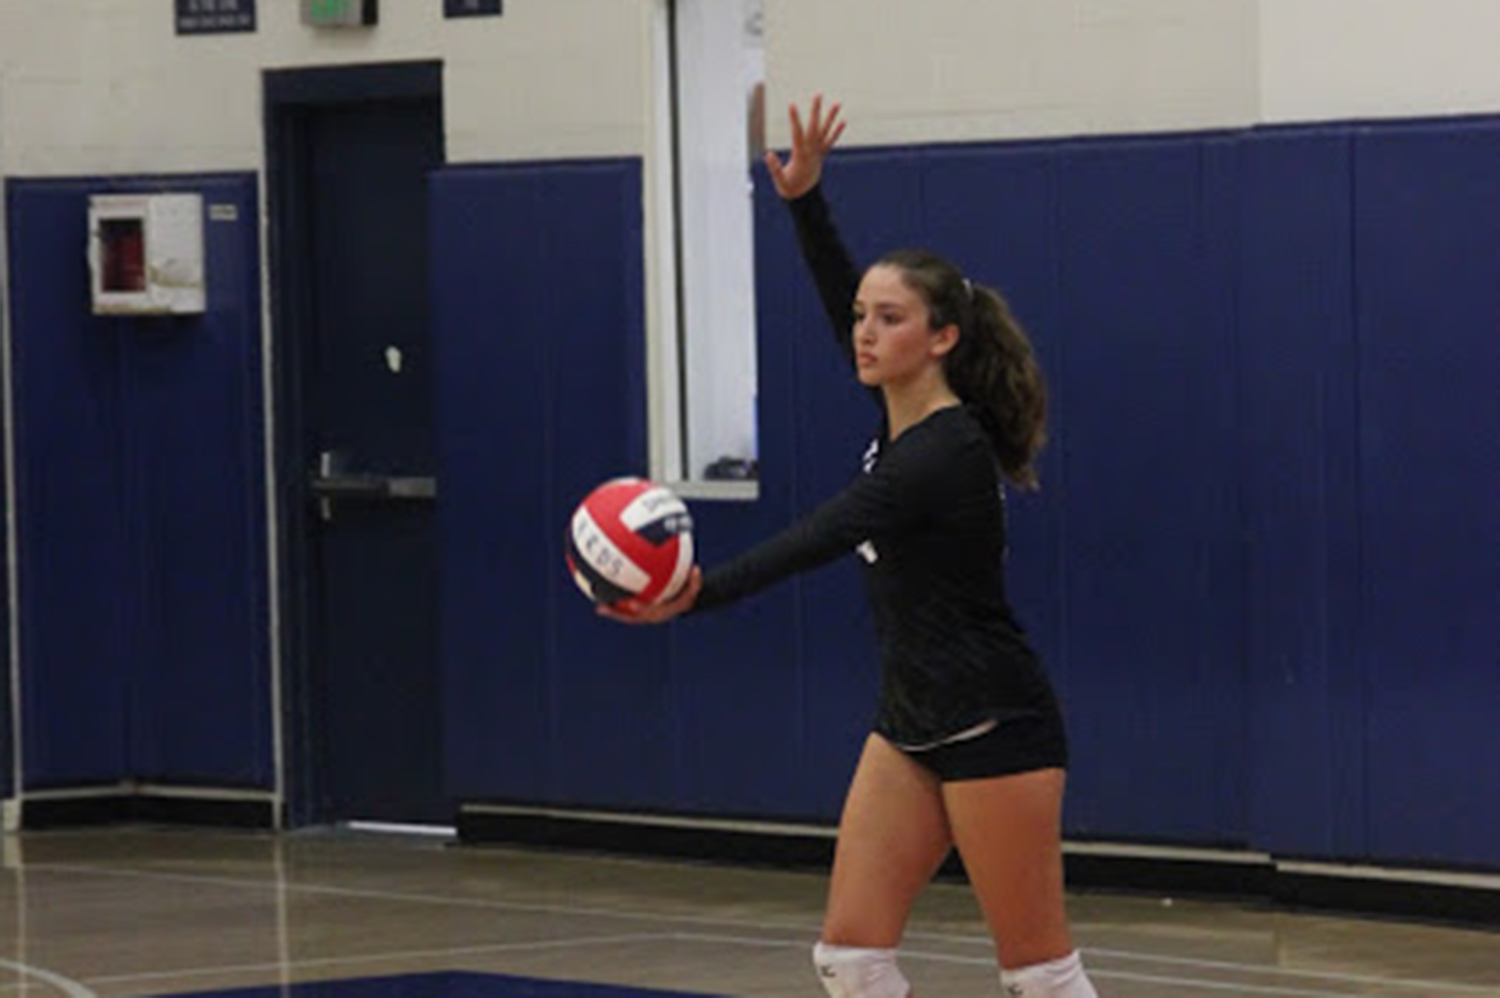 Bella Morgan prepares to serve in a game against Crossroads in September 2018. On top of playing volleyball since the age of 9, Morgan makes ceramics in her free time. Photo courtesy of Marlee Rice.